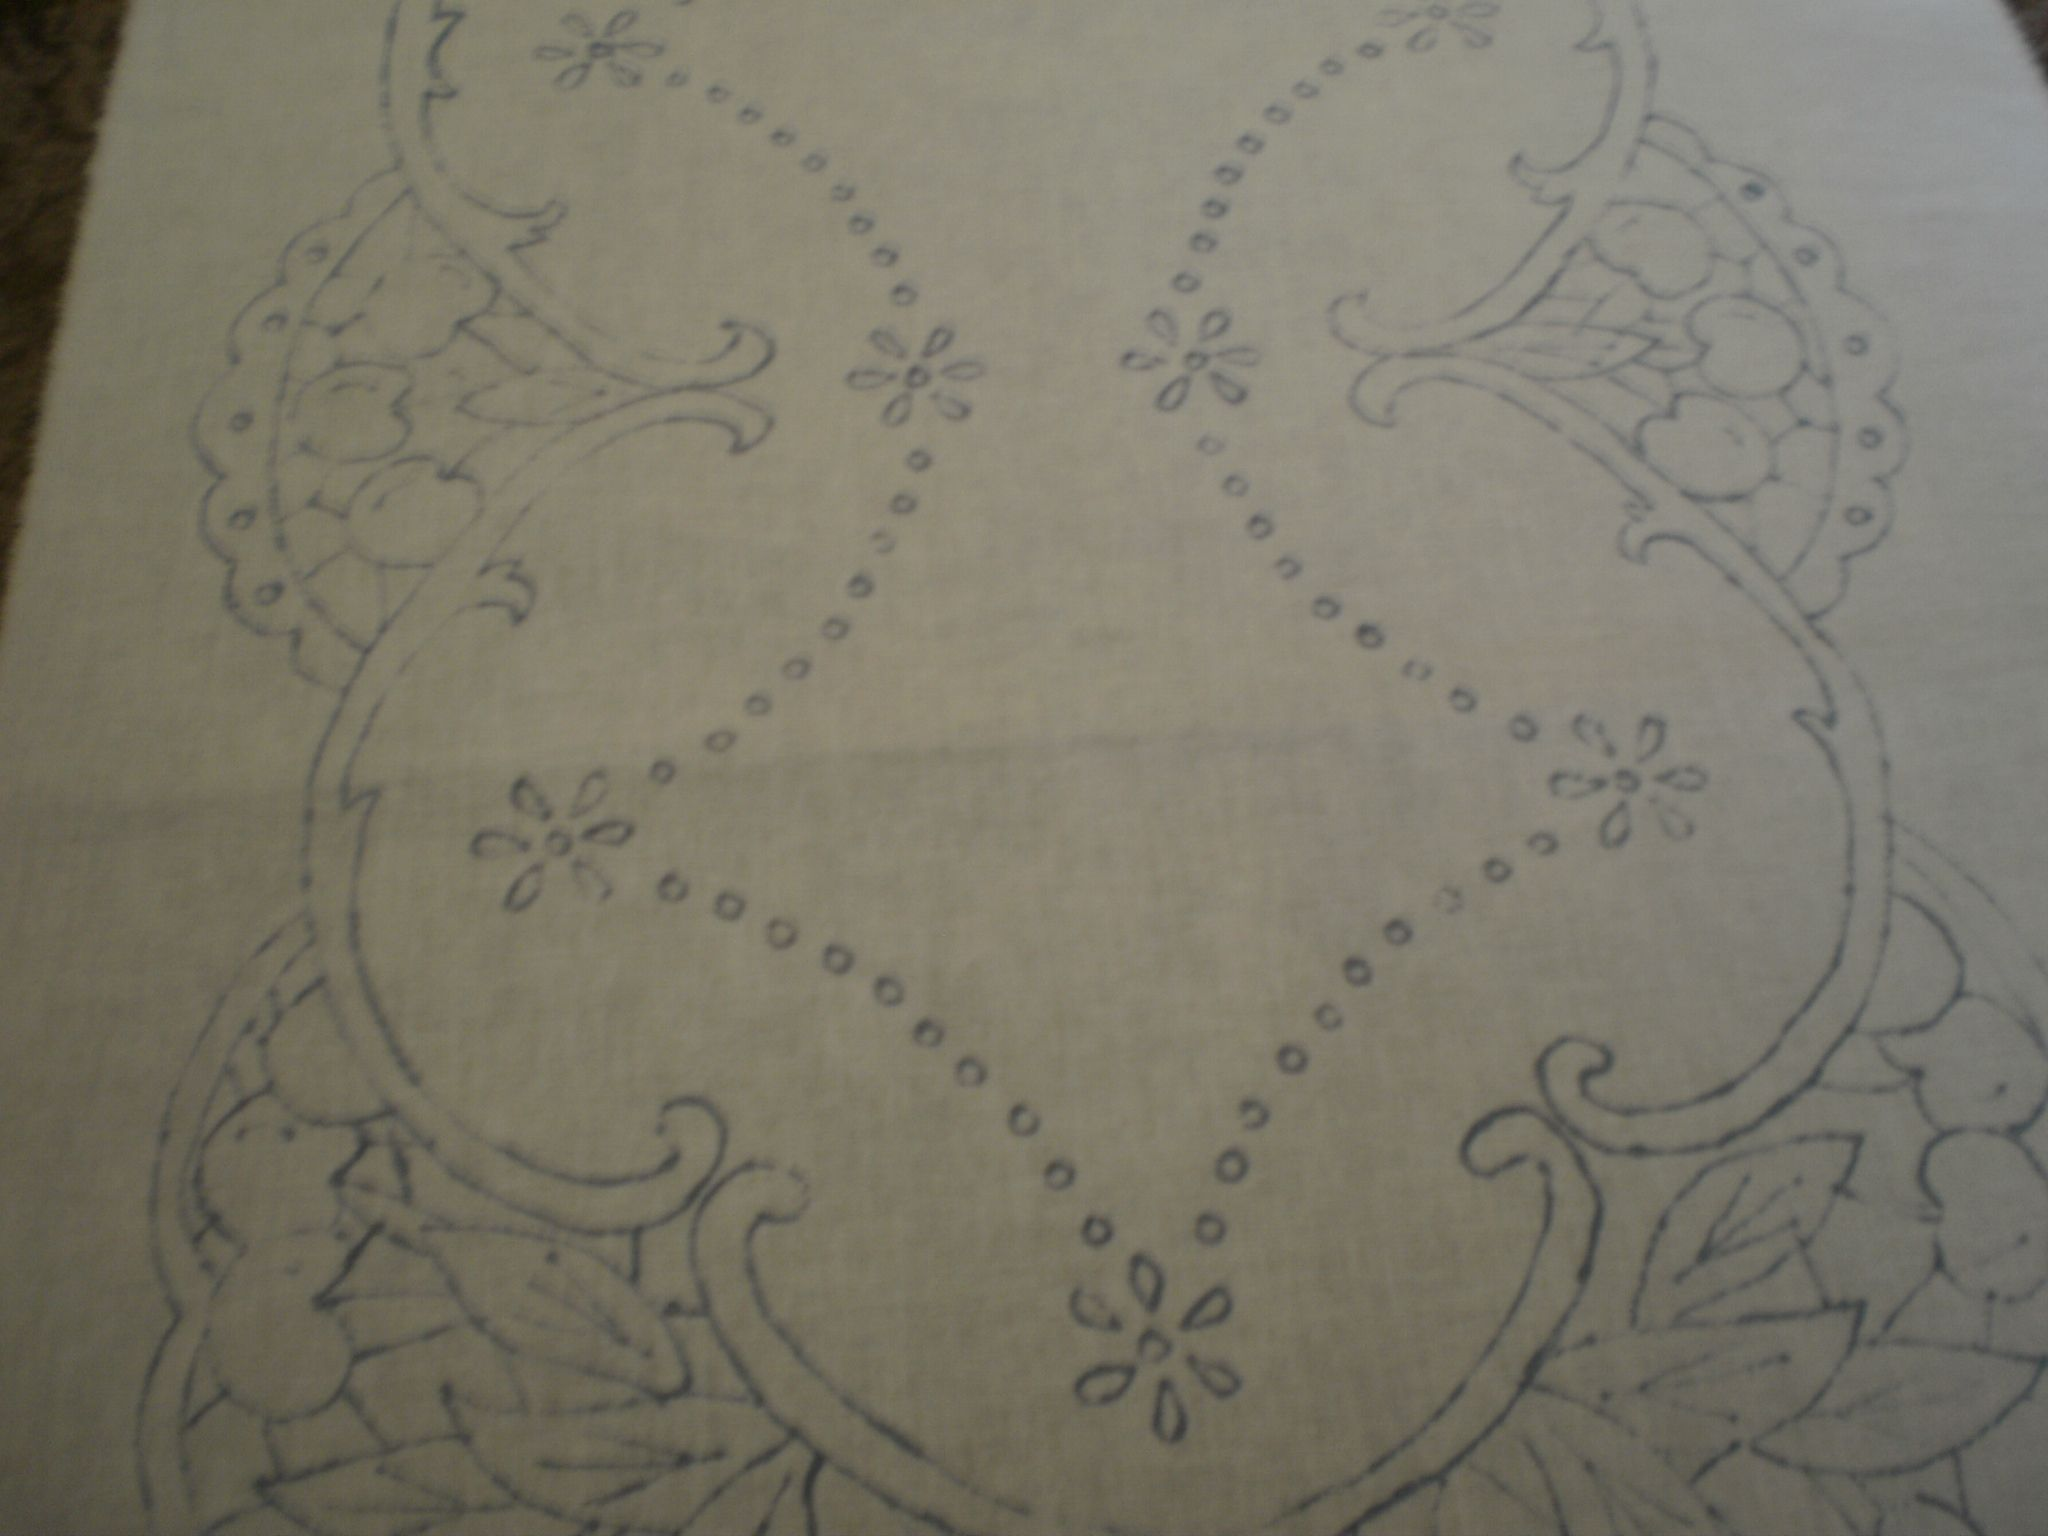 embroidery sketches Pinterest Embroidery